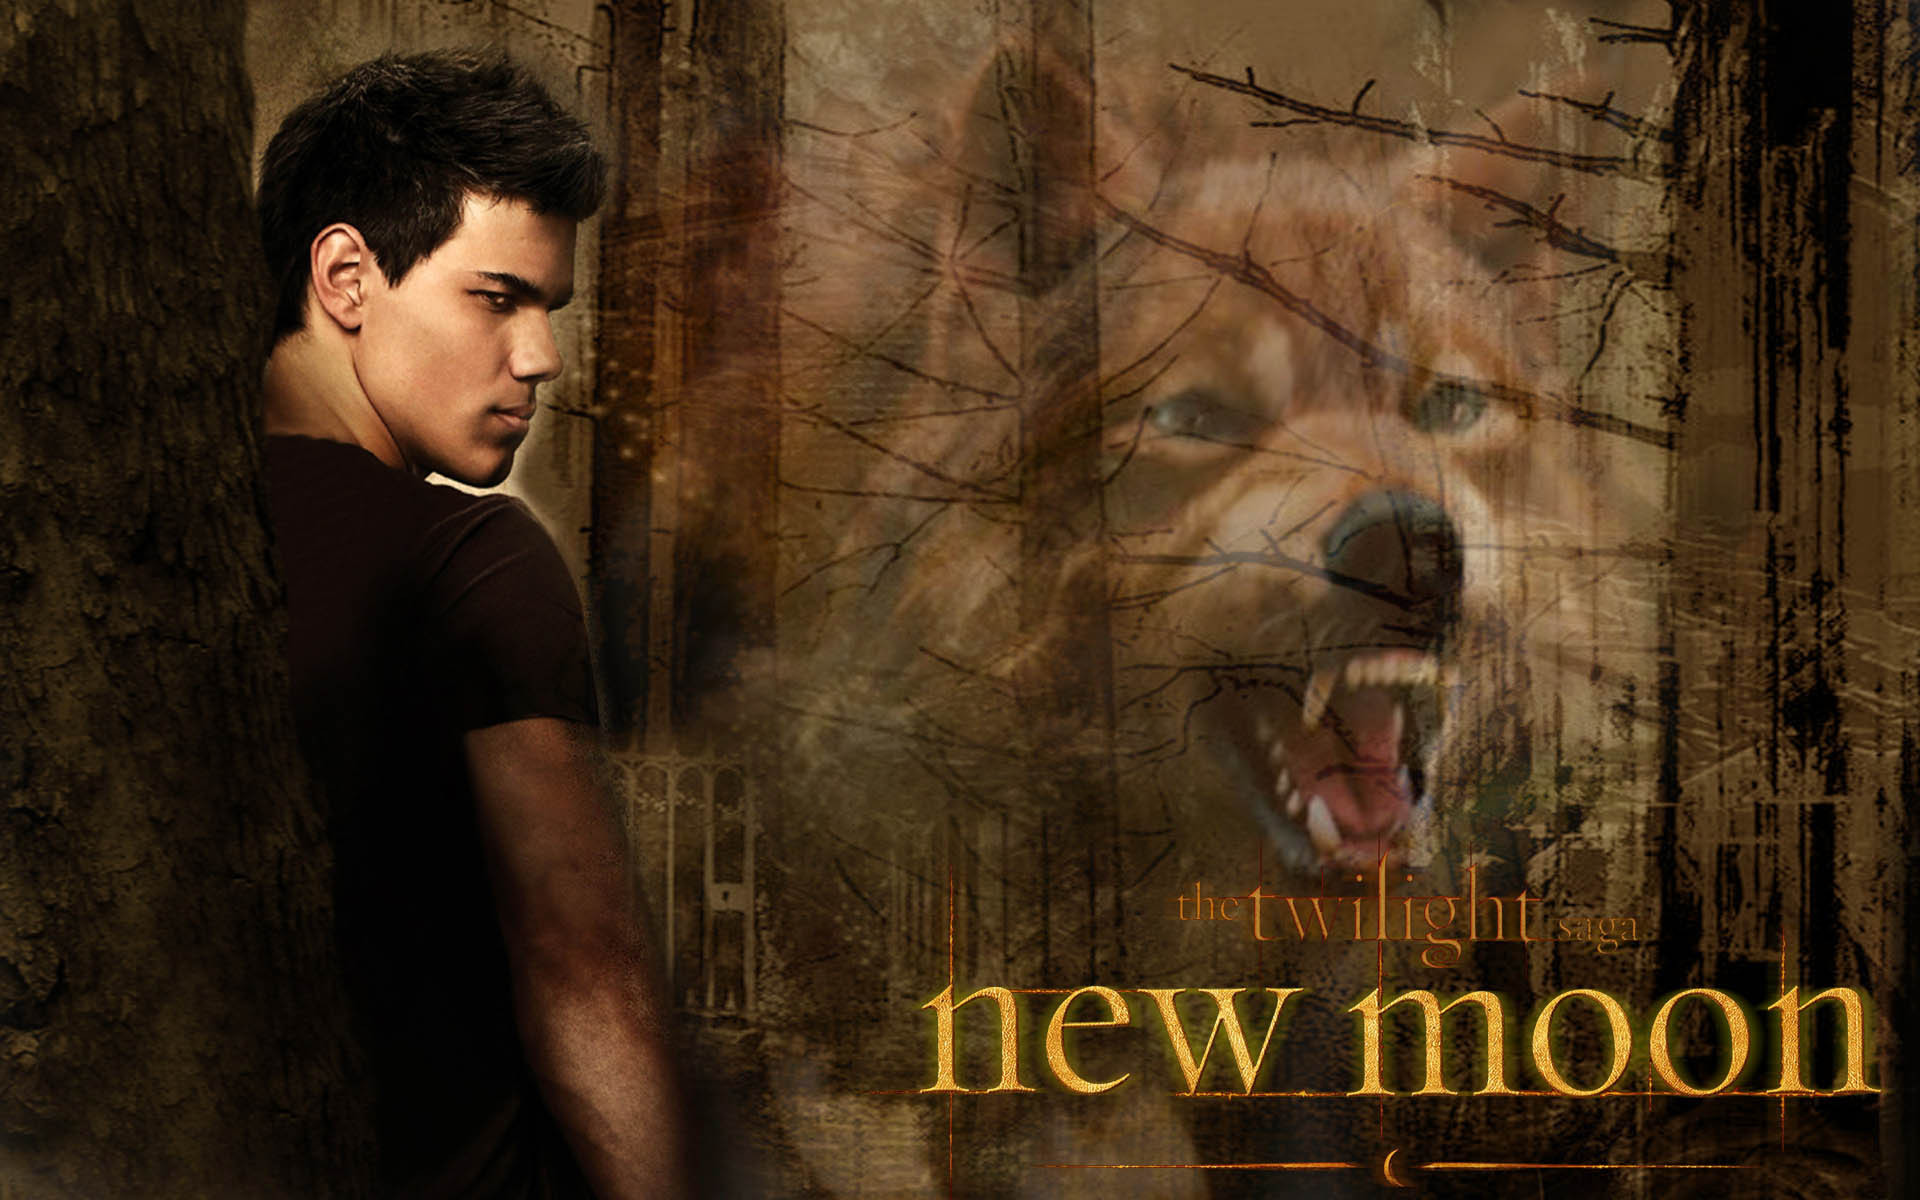 twilight movie new moon - photo #4